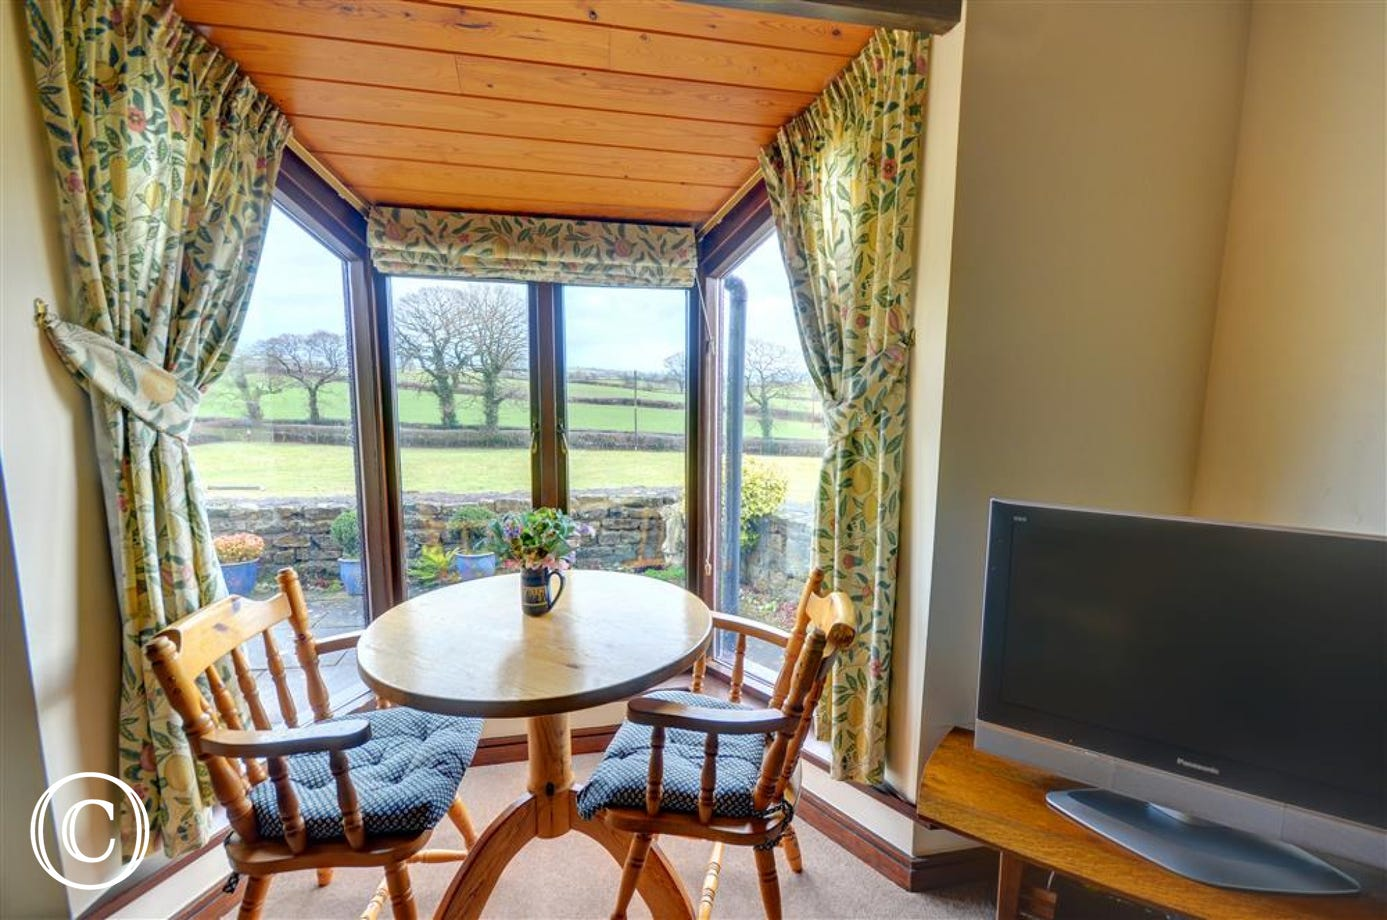 Dining area in the conservatory with open countryside views.